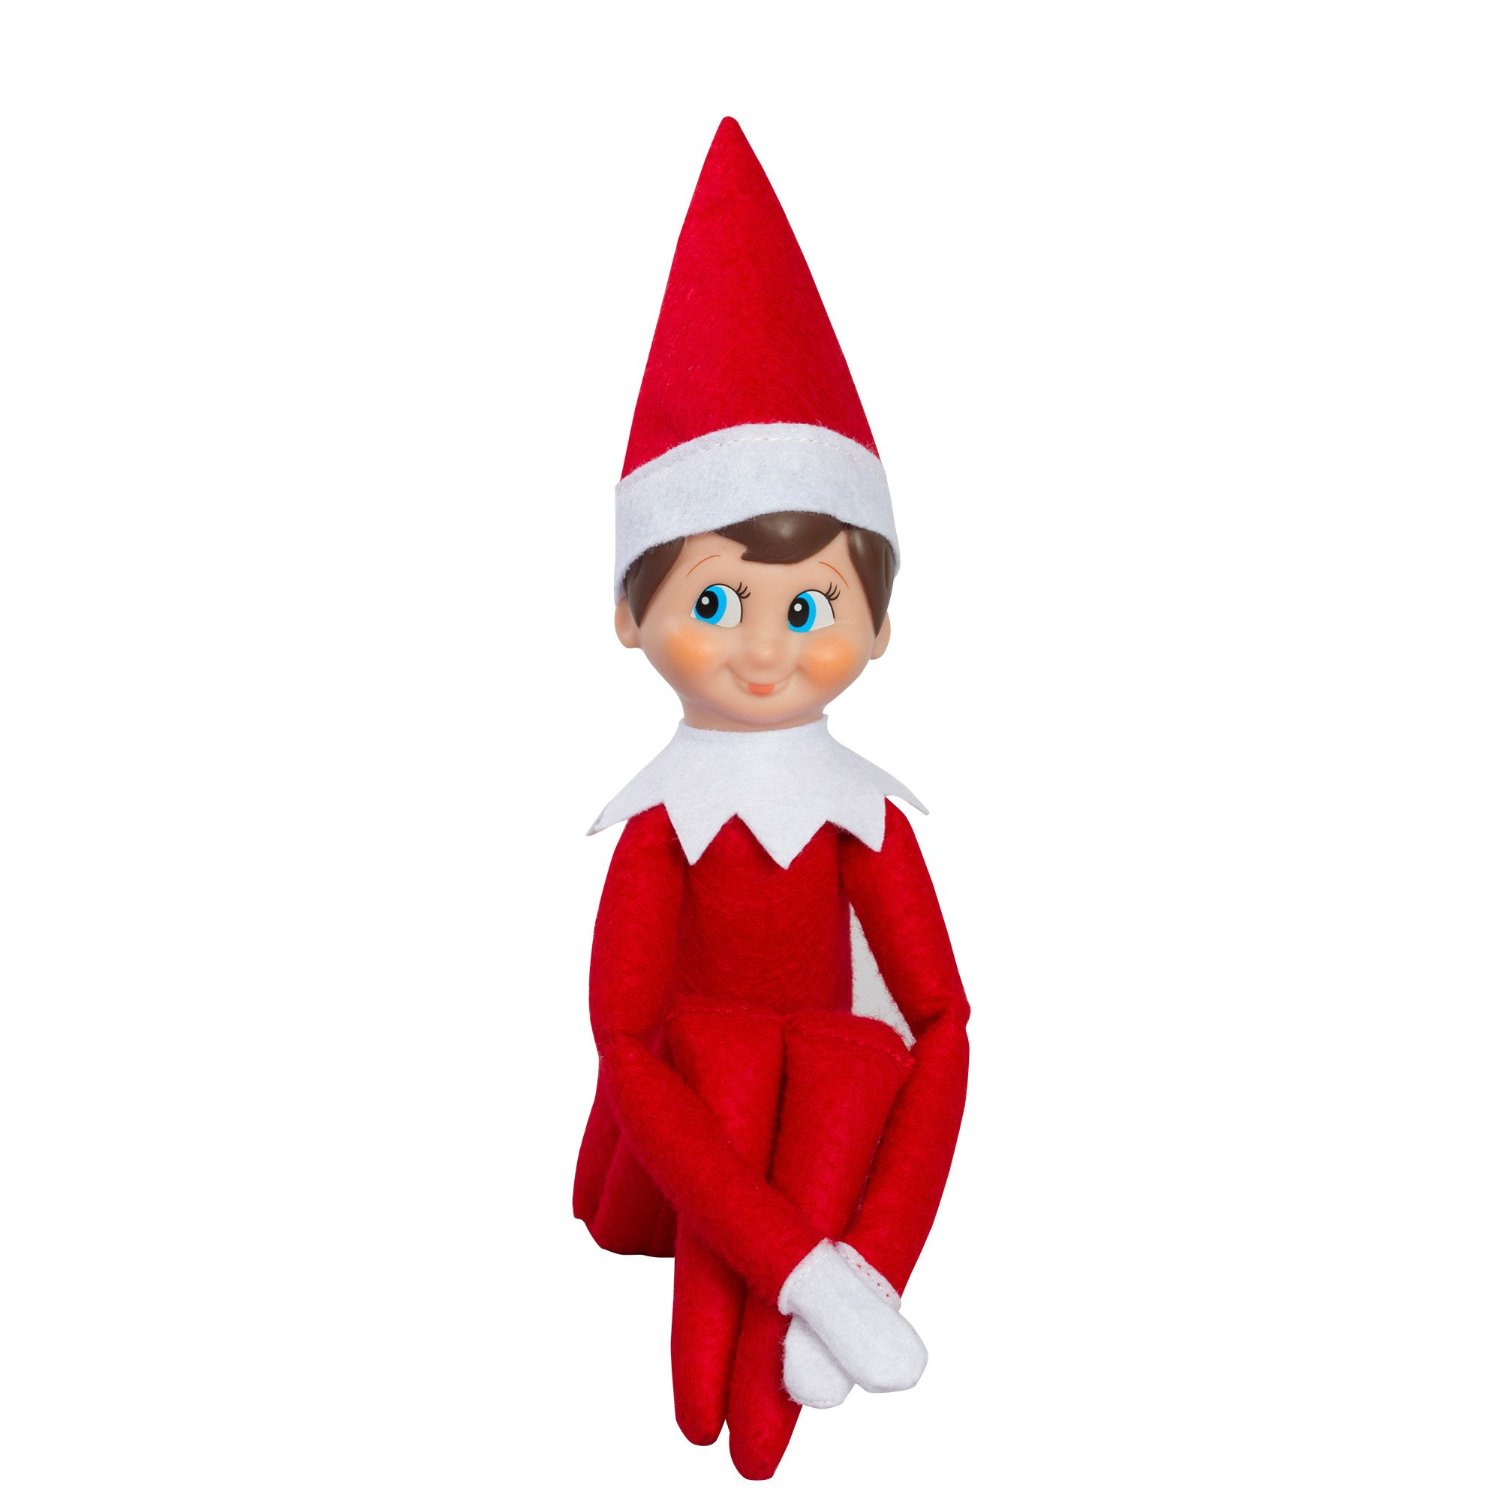 Get fast, free shipping with Amazon PrimeShop Our Huge Selection · Explore Amazon Devices · Deals of the Day · Read Ratings & ReviewsBrands: The Elf on the Shelf, Pressman, FunKo, Elf and more.